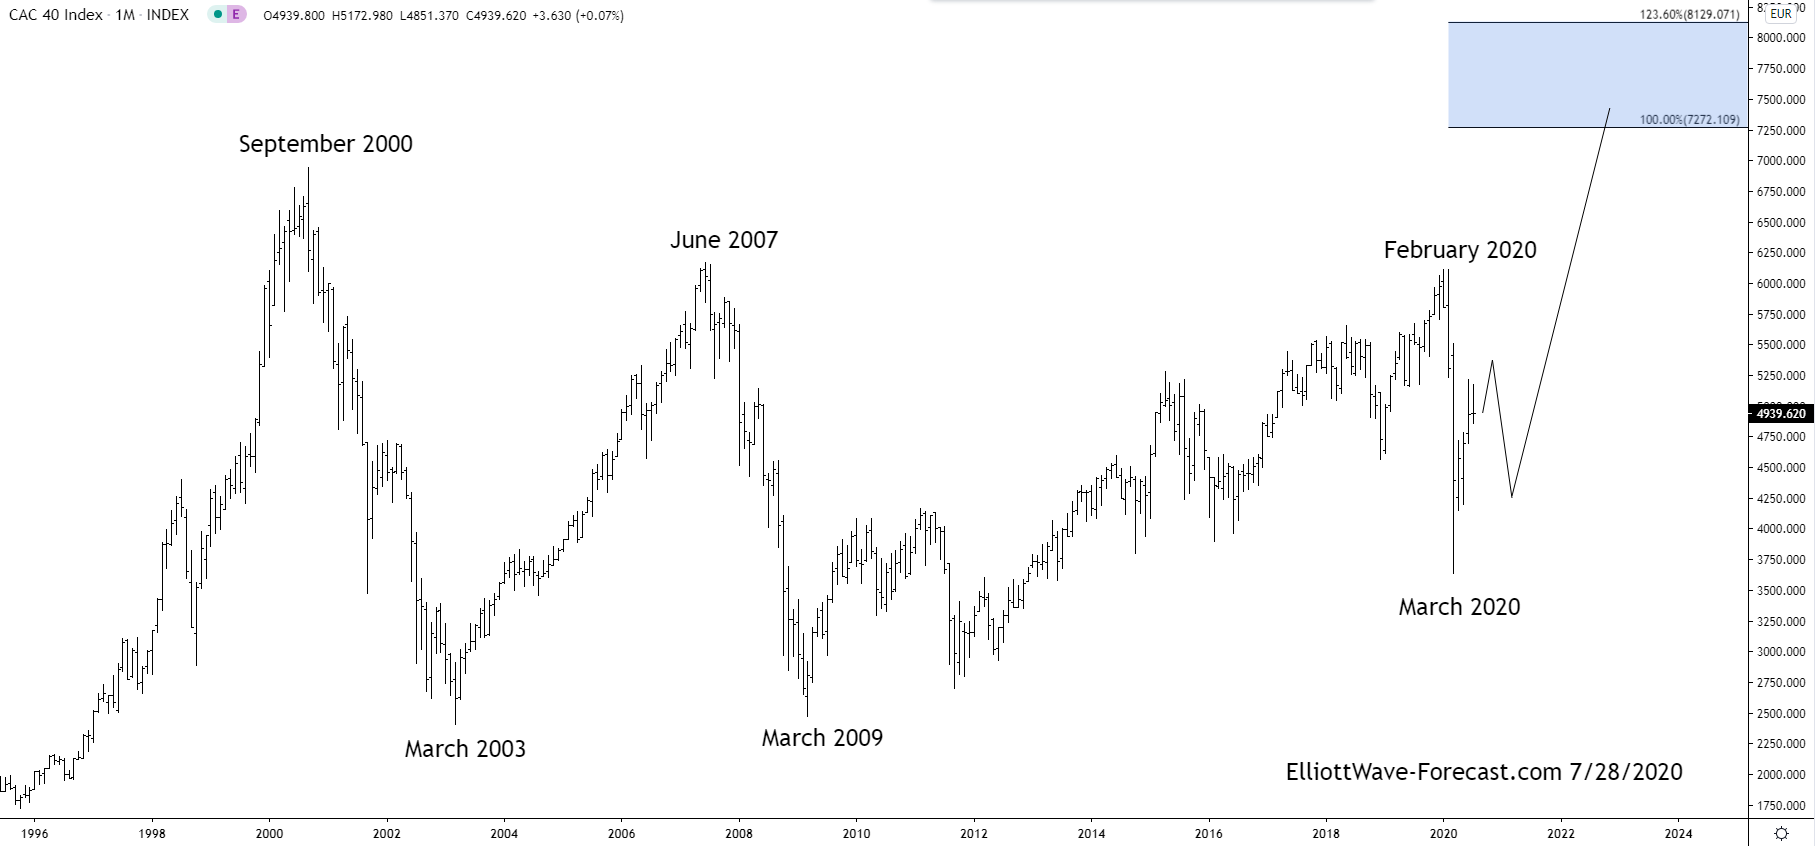 The Longer Term Bullish Cycles of the $CAC40